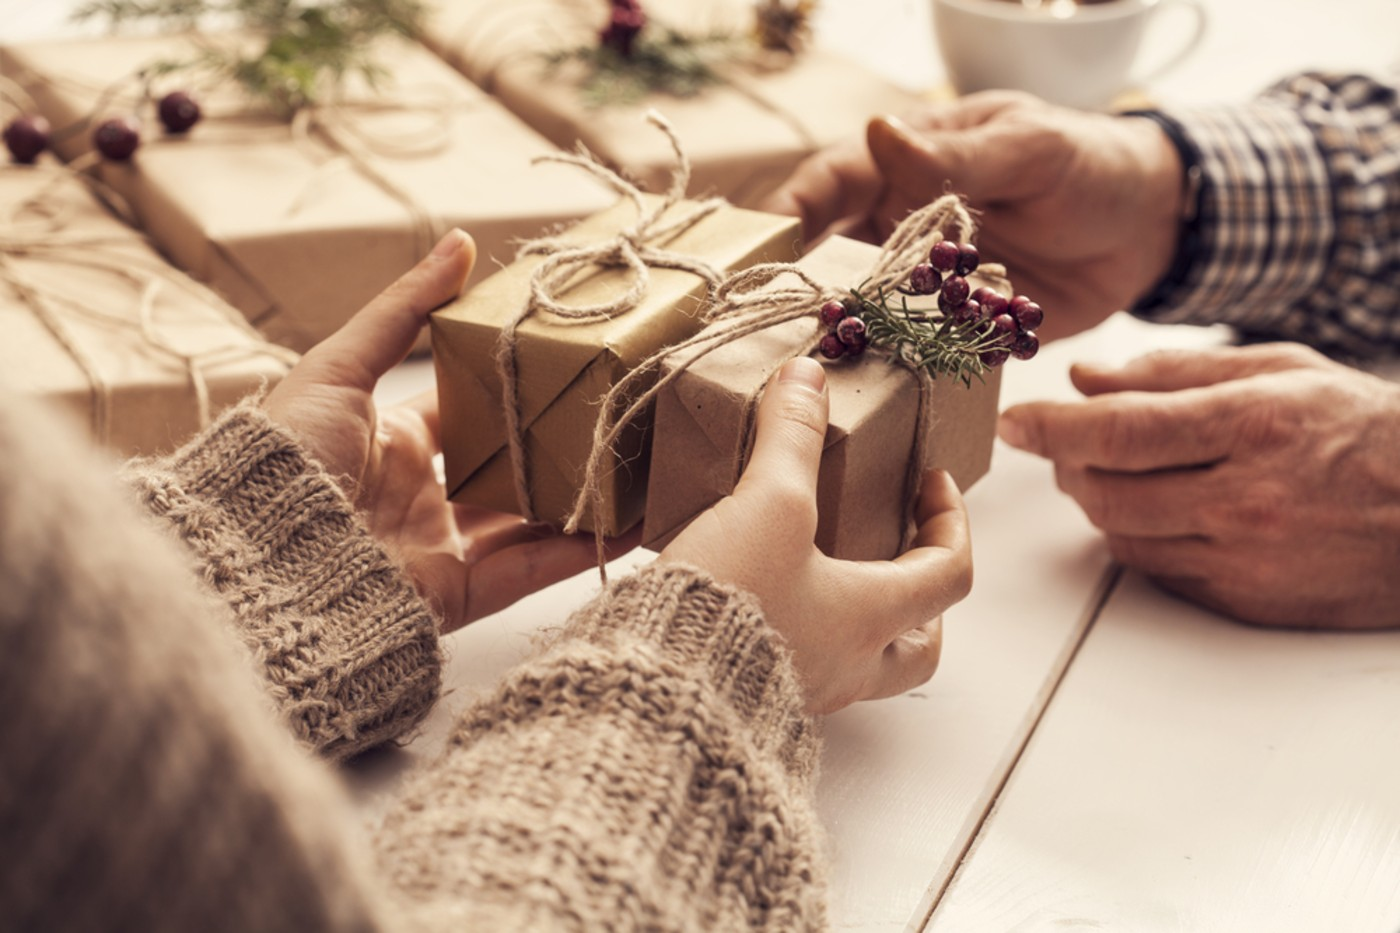 https://tickertapecdn.tdameritrade.com/assets/images/pages/md/Several family members giving gifts around the holidays